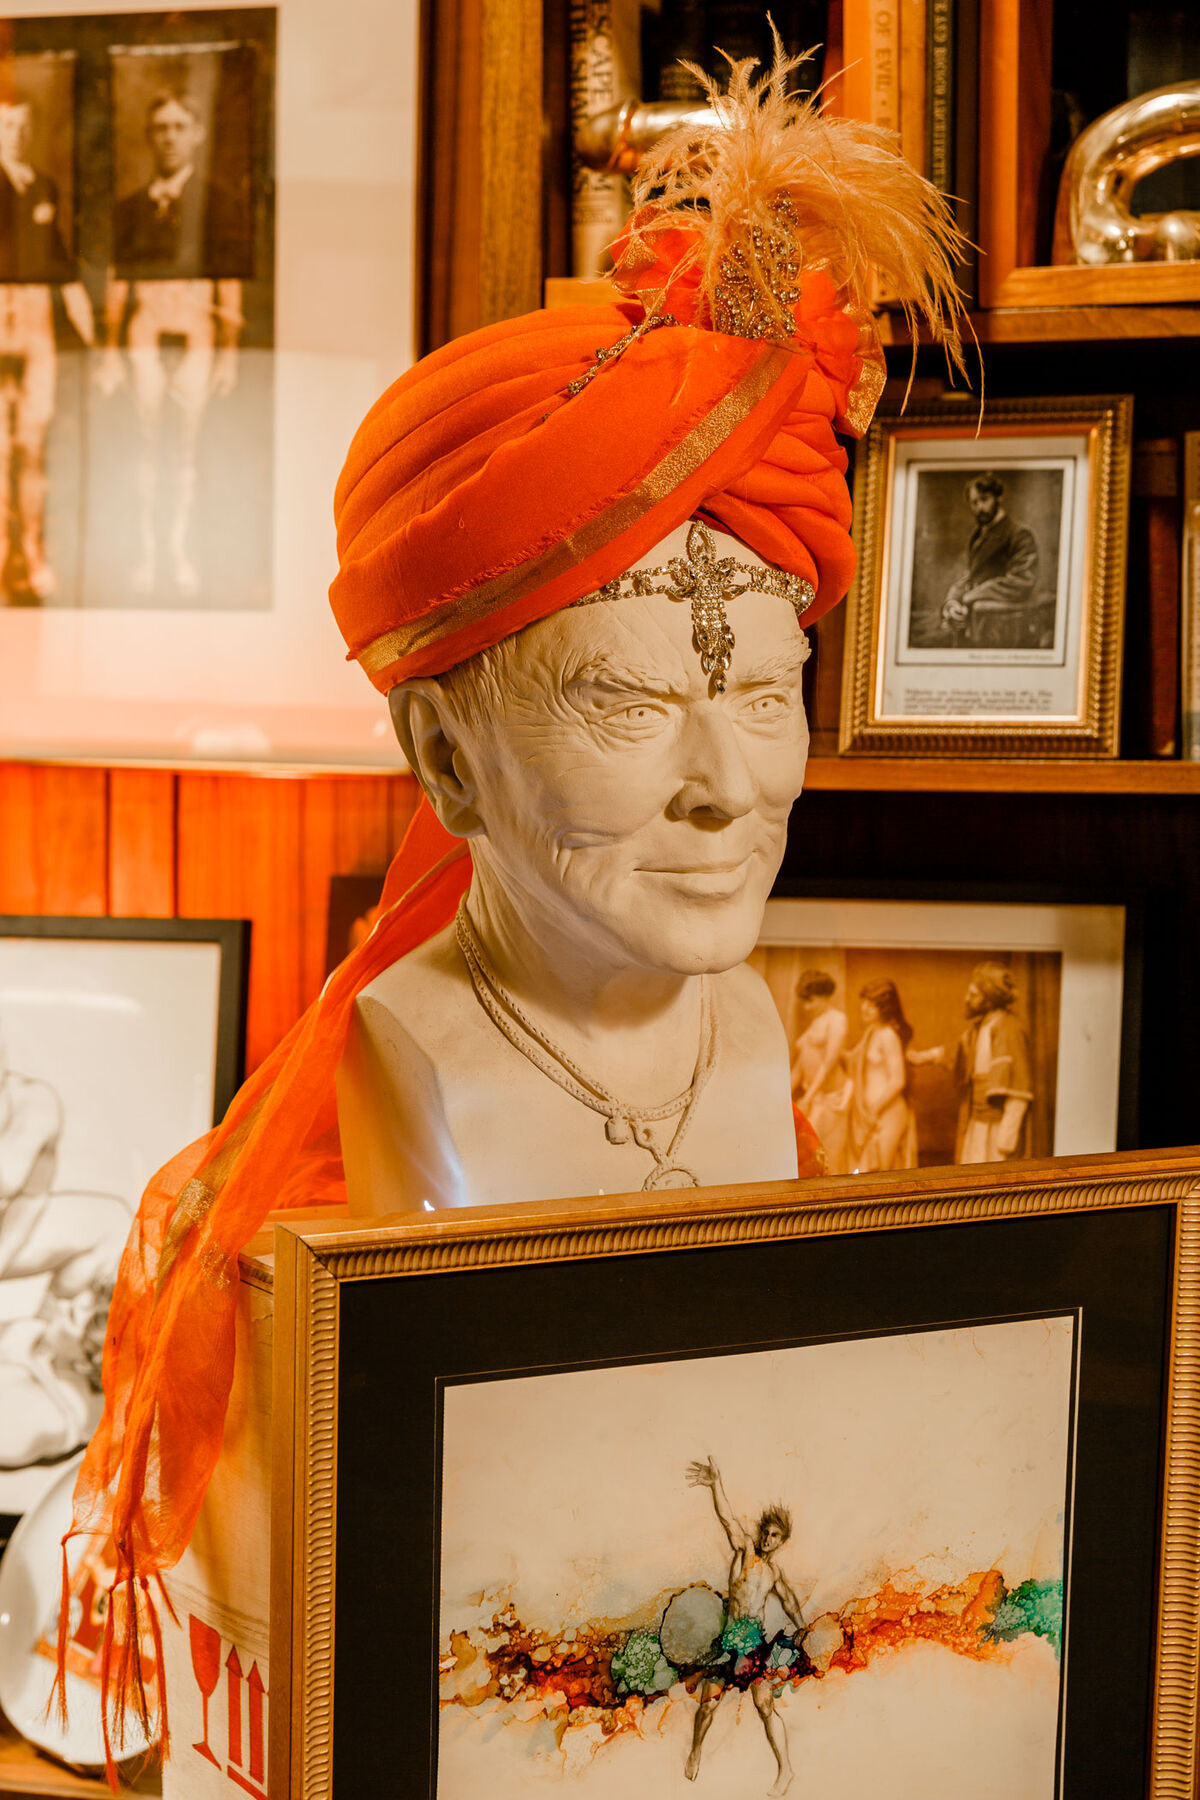 Kai Teichert's bust of Leslie, made in 2015, gives off a Carnac impression in the sitter's own addition, a feathered orange turban. Photo by Max Burkhalter for Artsy.